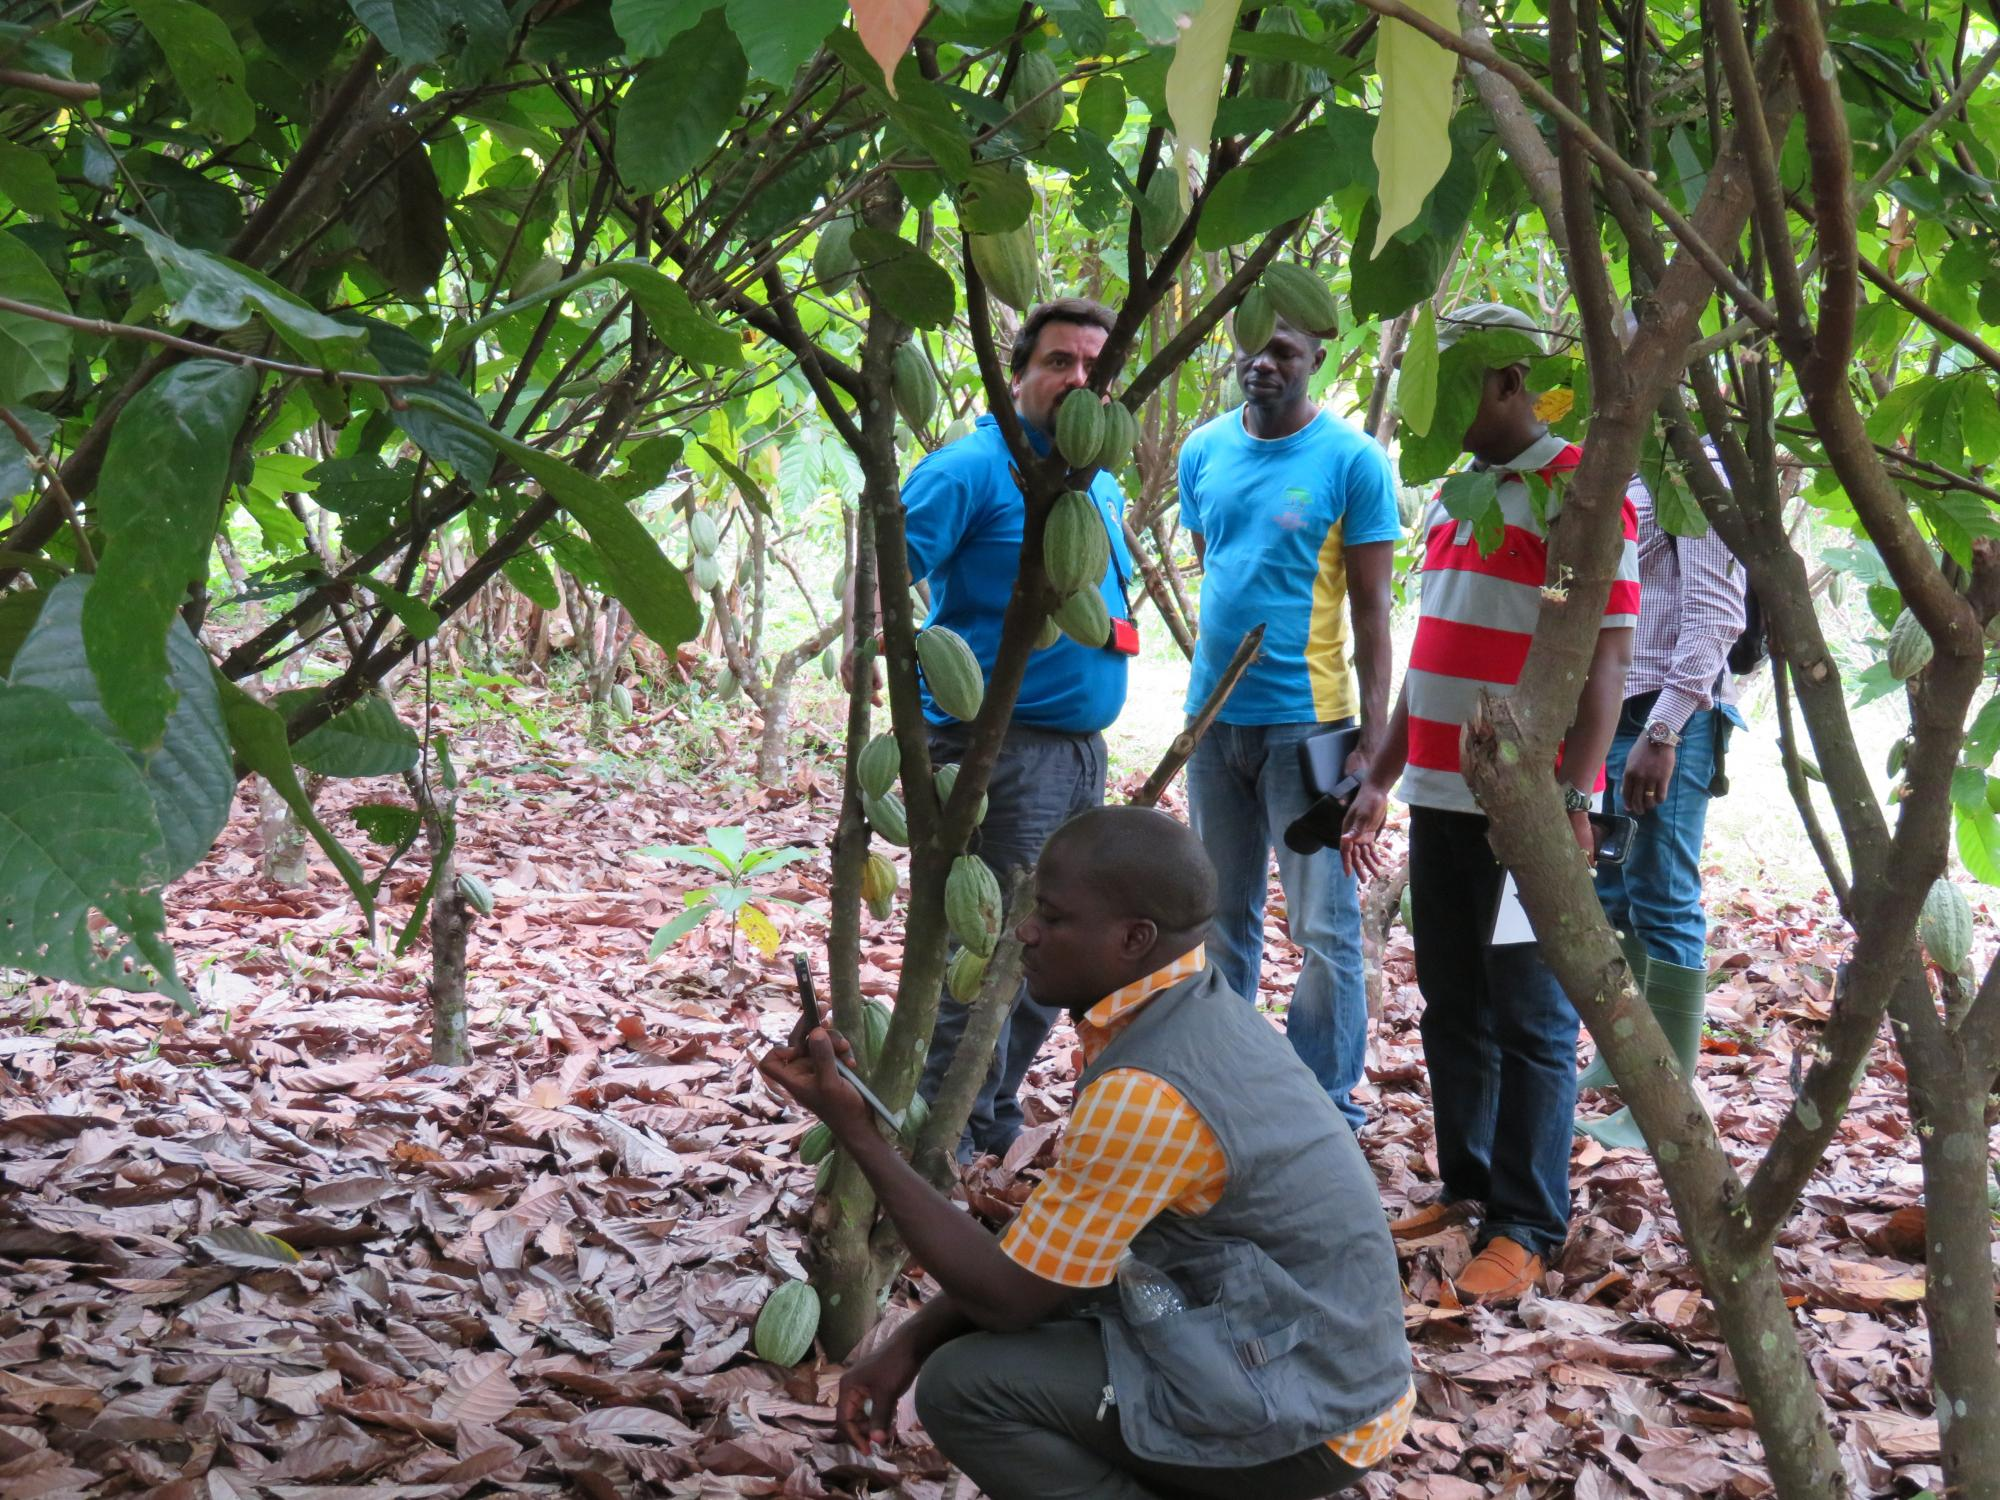 A scientist checks GPS coordinates of a cacao tree that is being monitored for signs of disease.